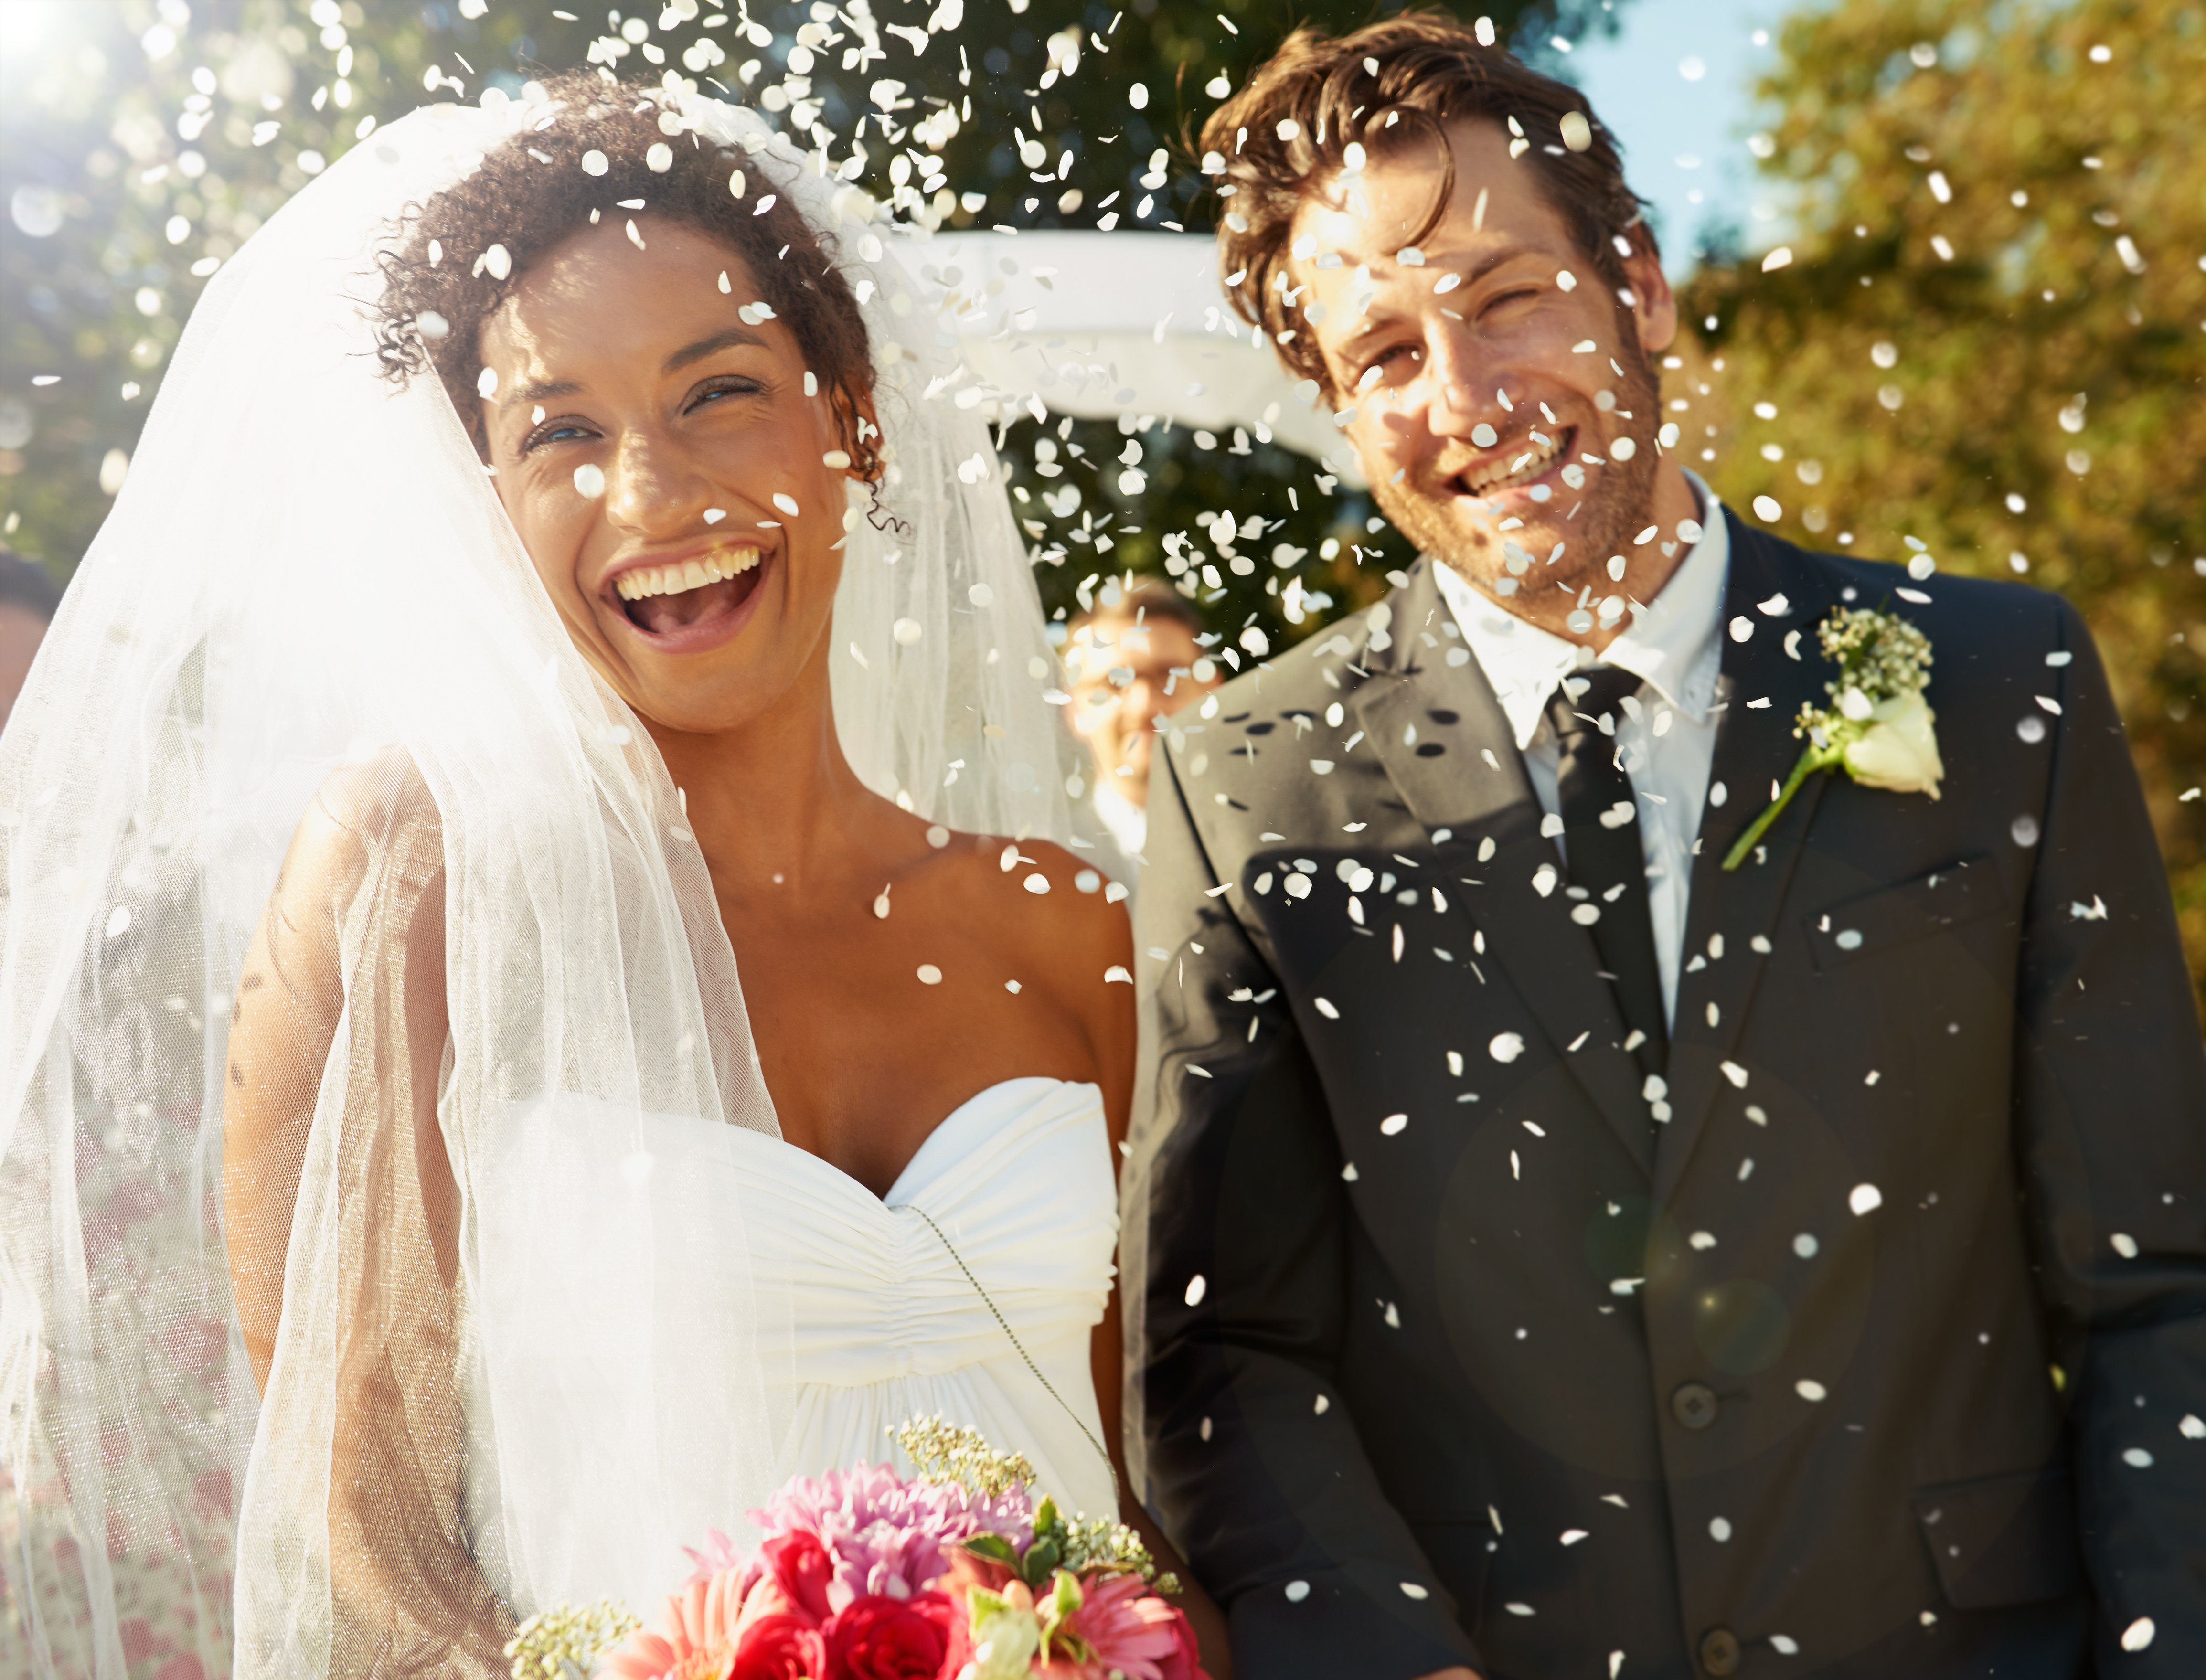 How Getting Married Could 'Protect Your